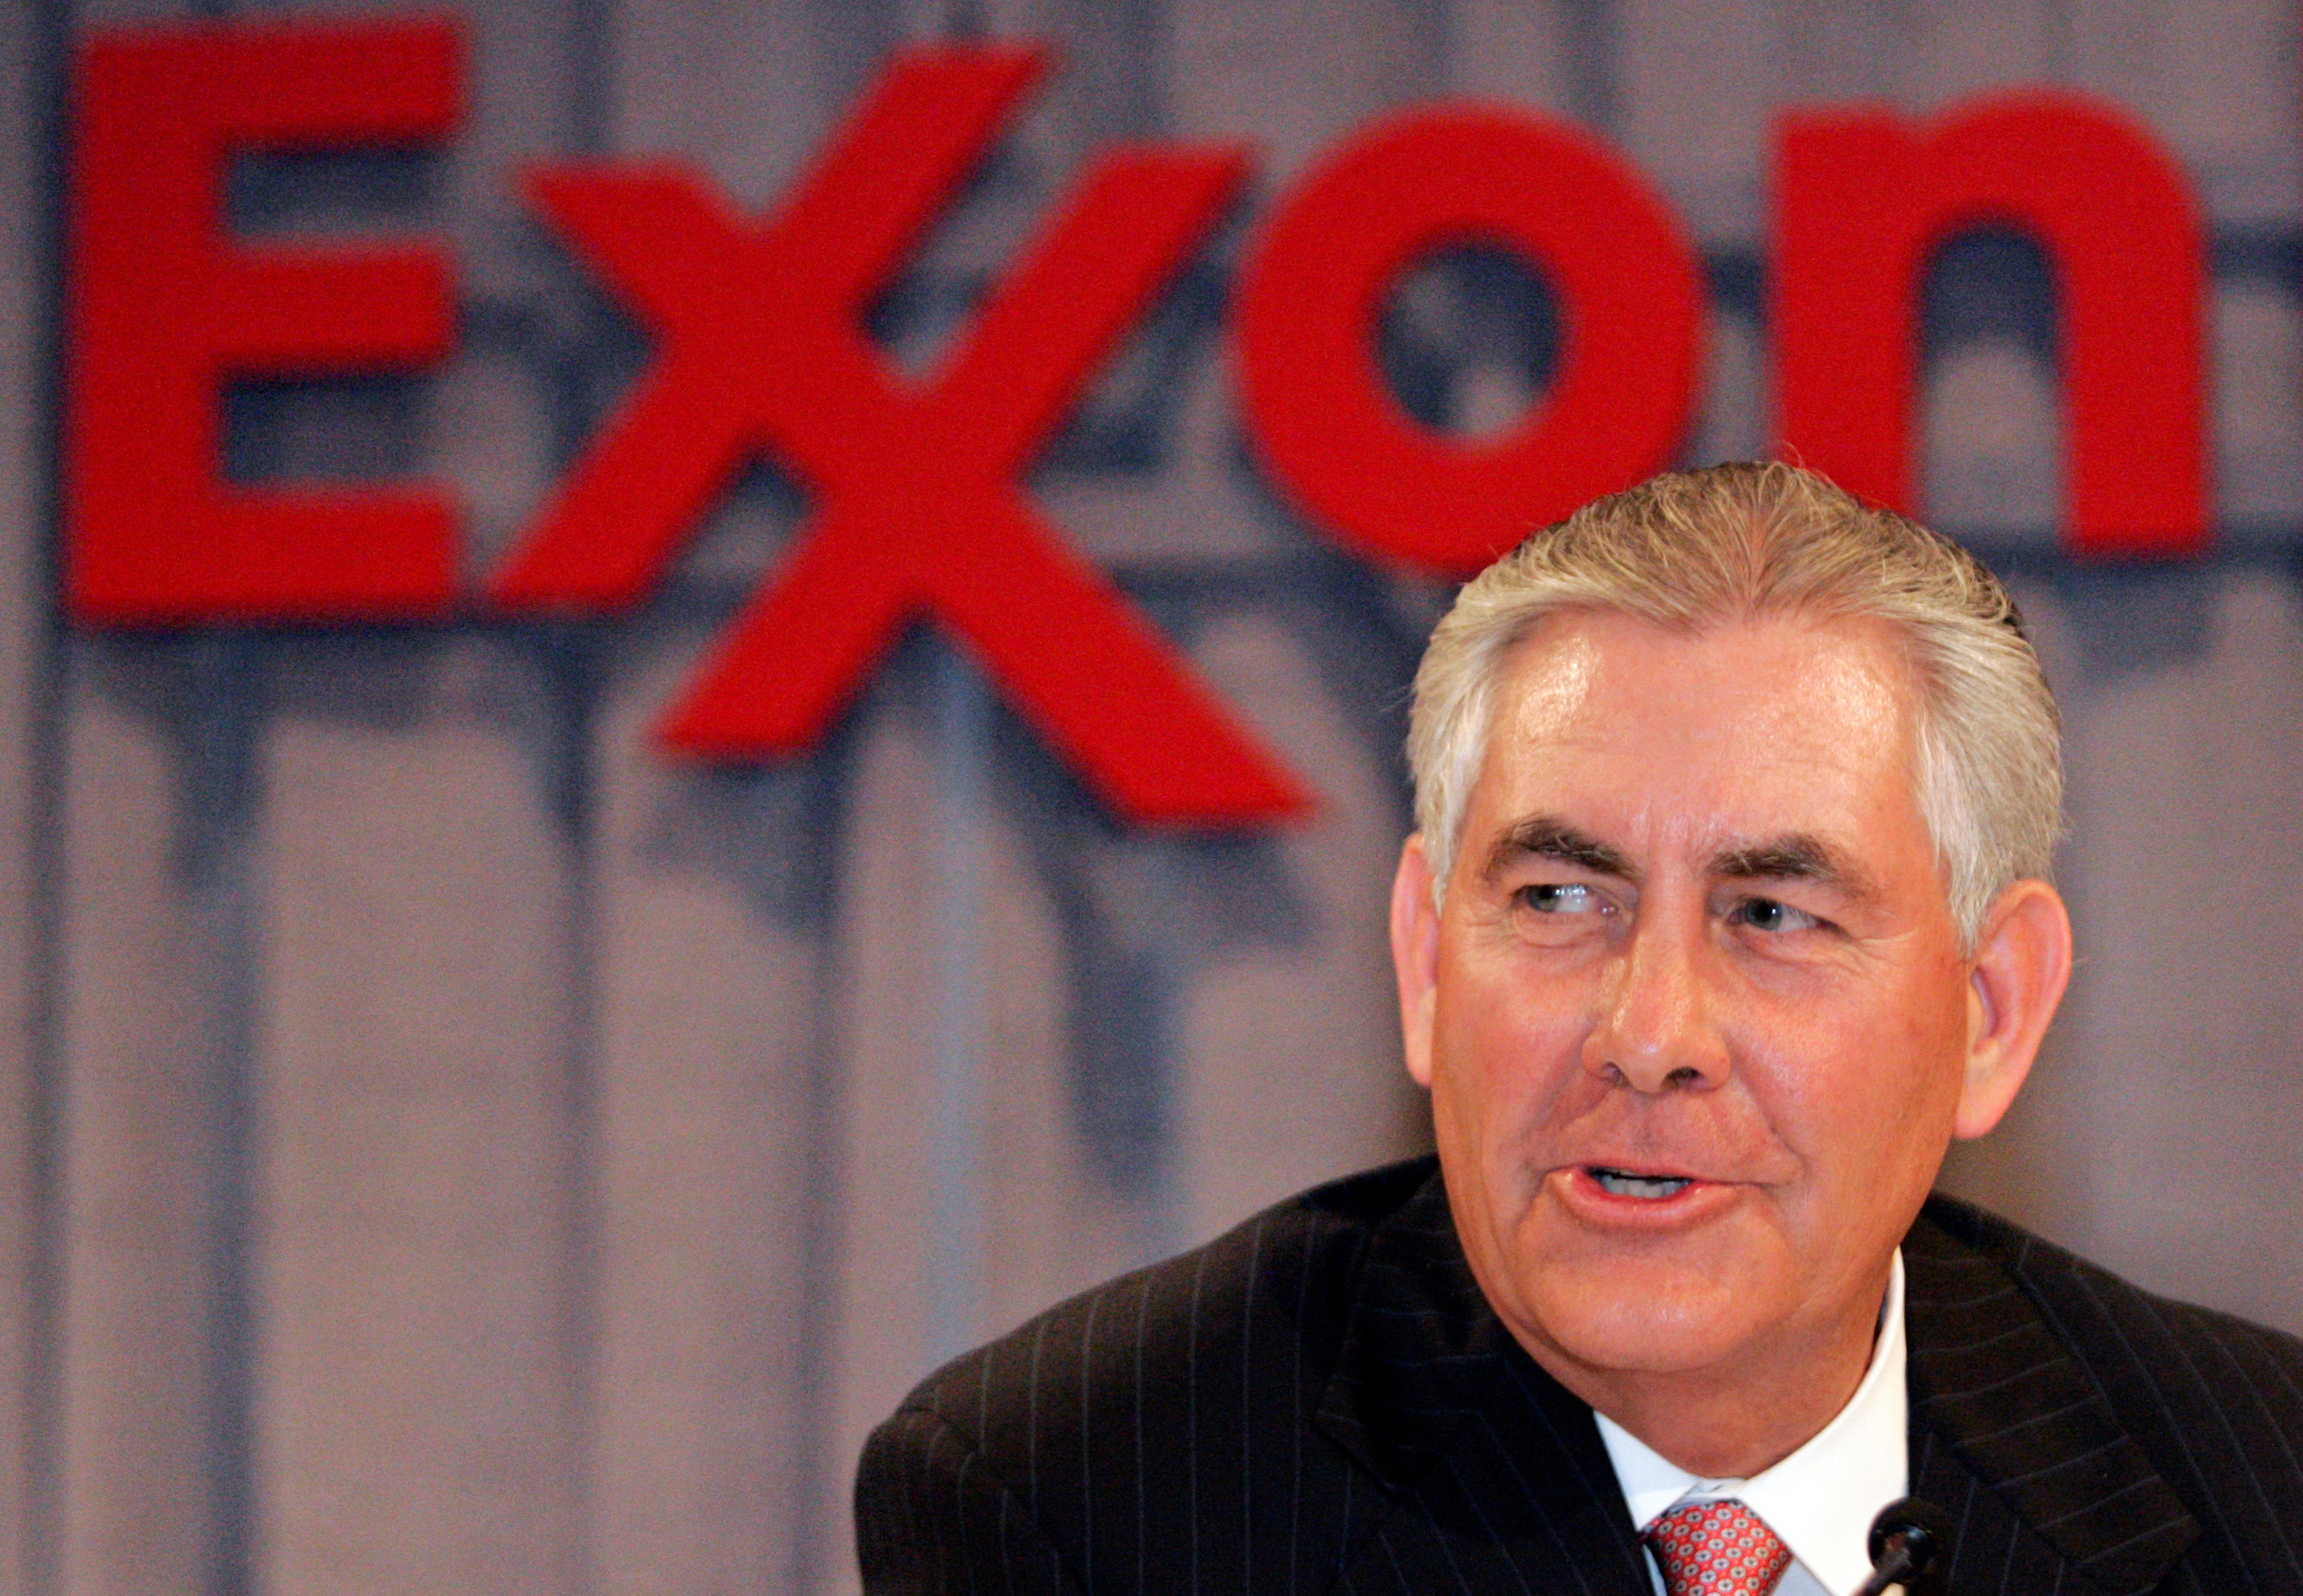 As head of Exxon Rex Tillerson forged relationships with corrupt leaders in Africa's oil states